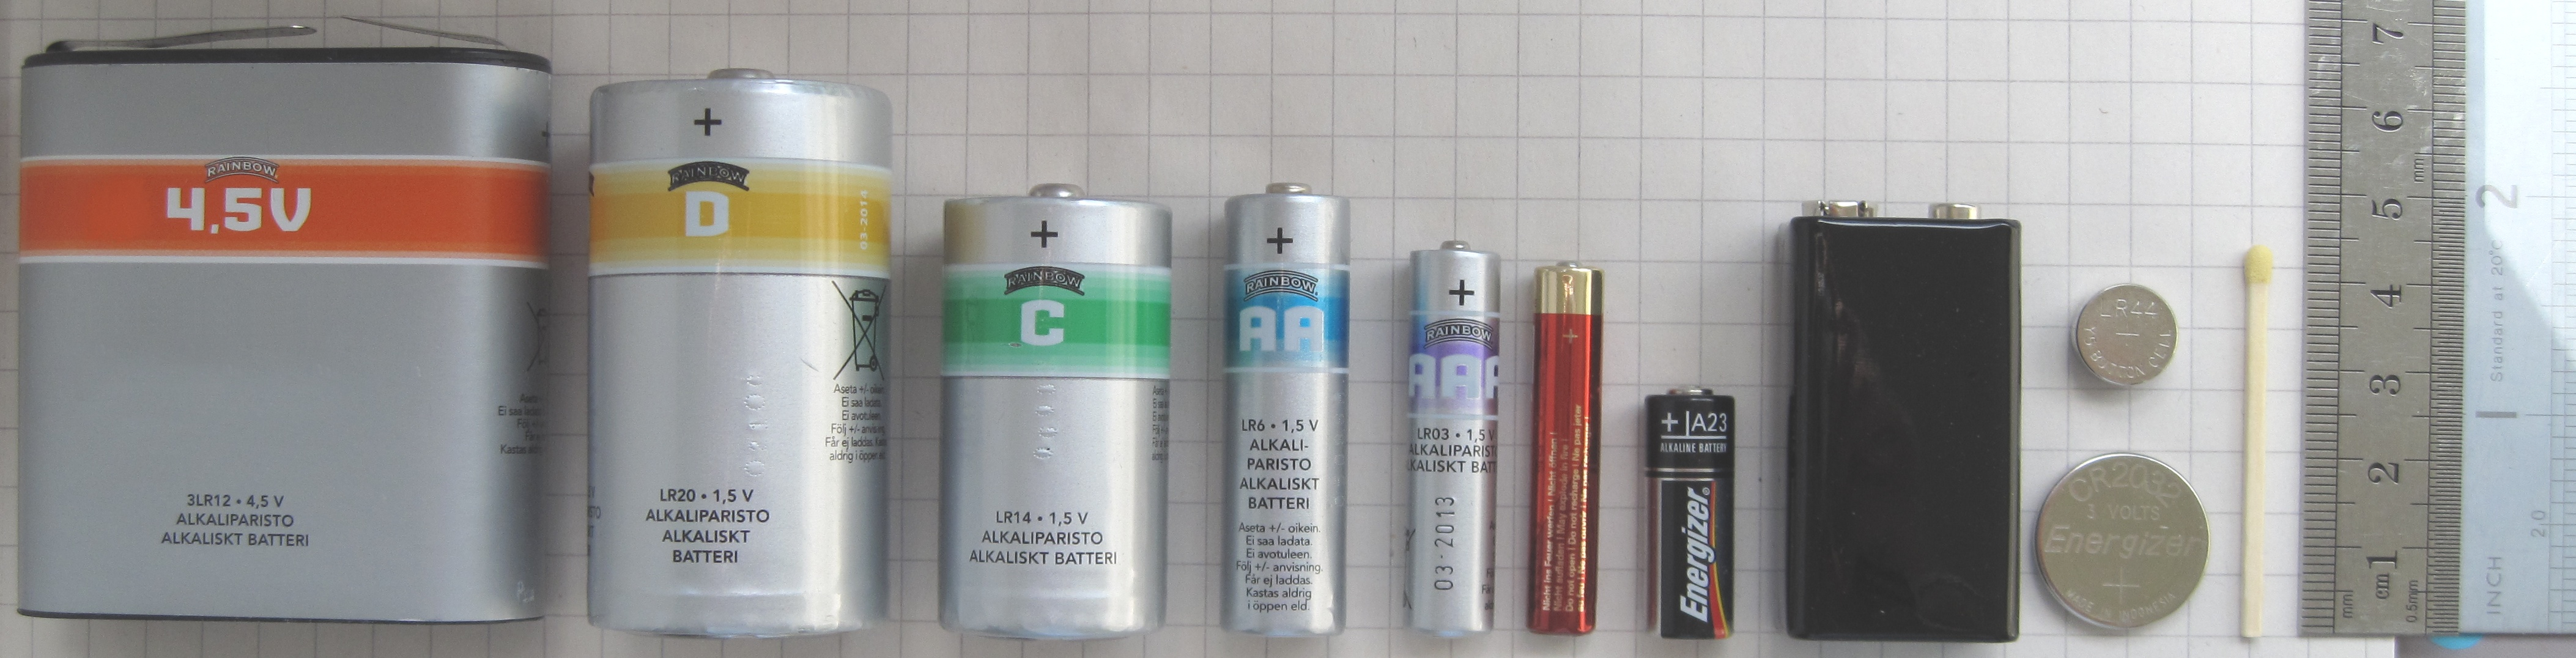 File:Batteries comparison 4,5 D C AA AAA AAAA A23 9V ...